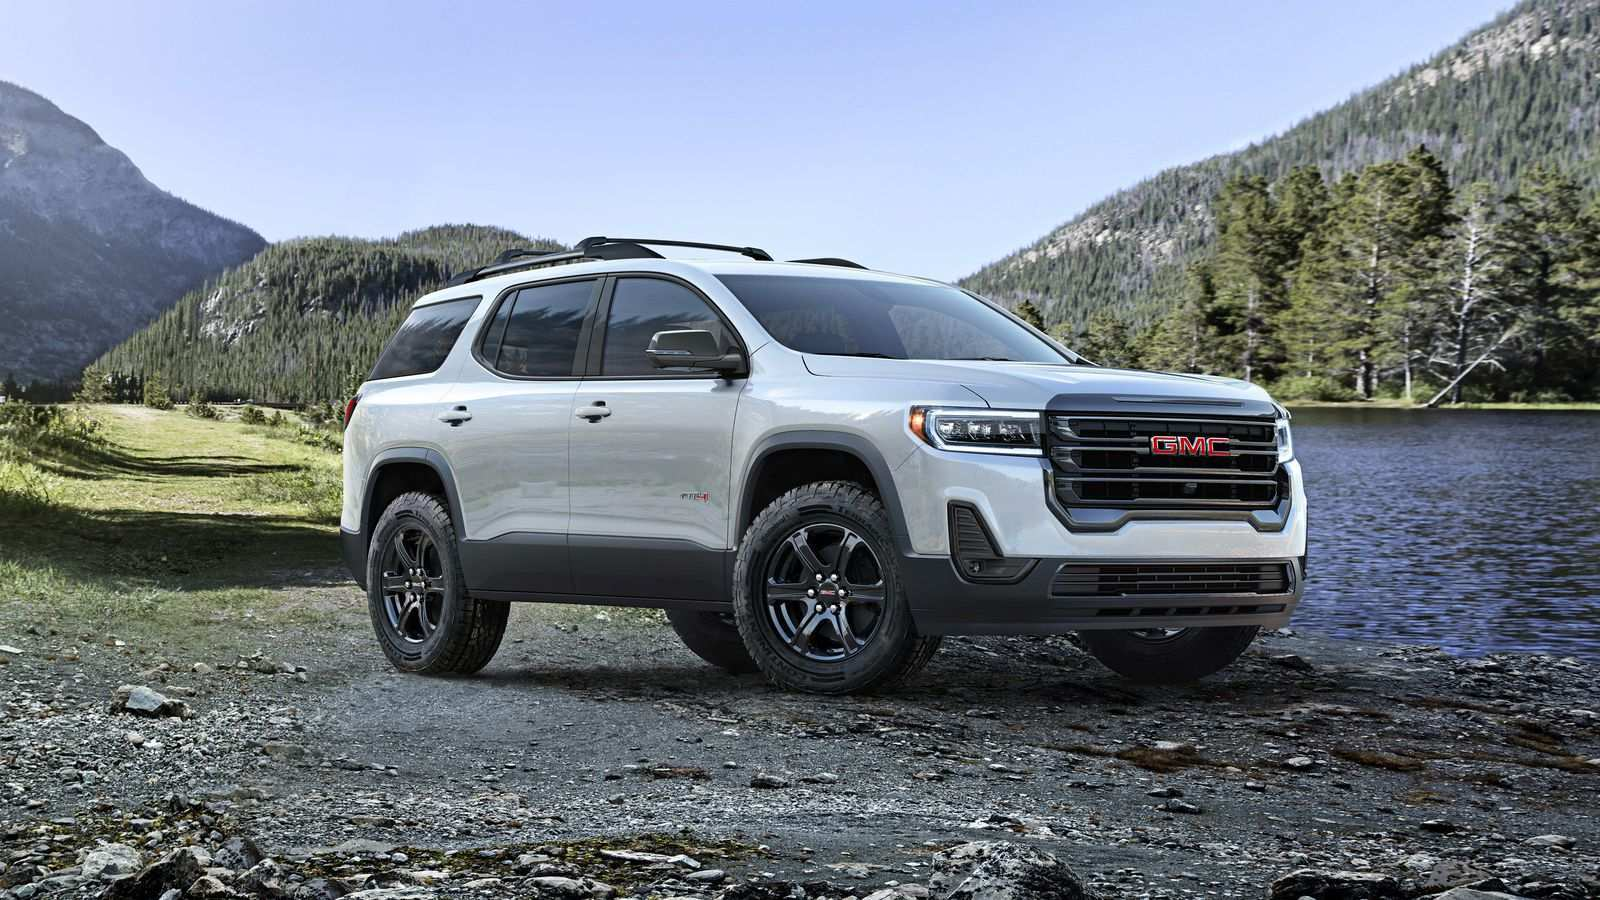 97 Gallery of Gmc Suv 2020 New Review for Gmc Suv 2020